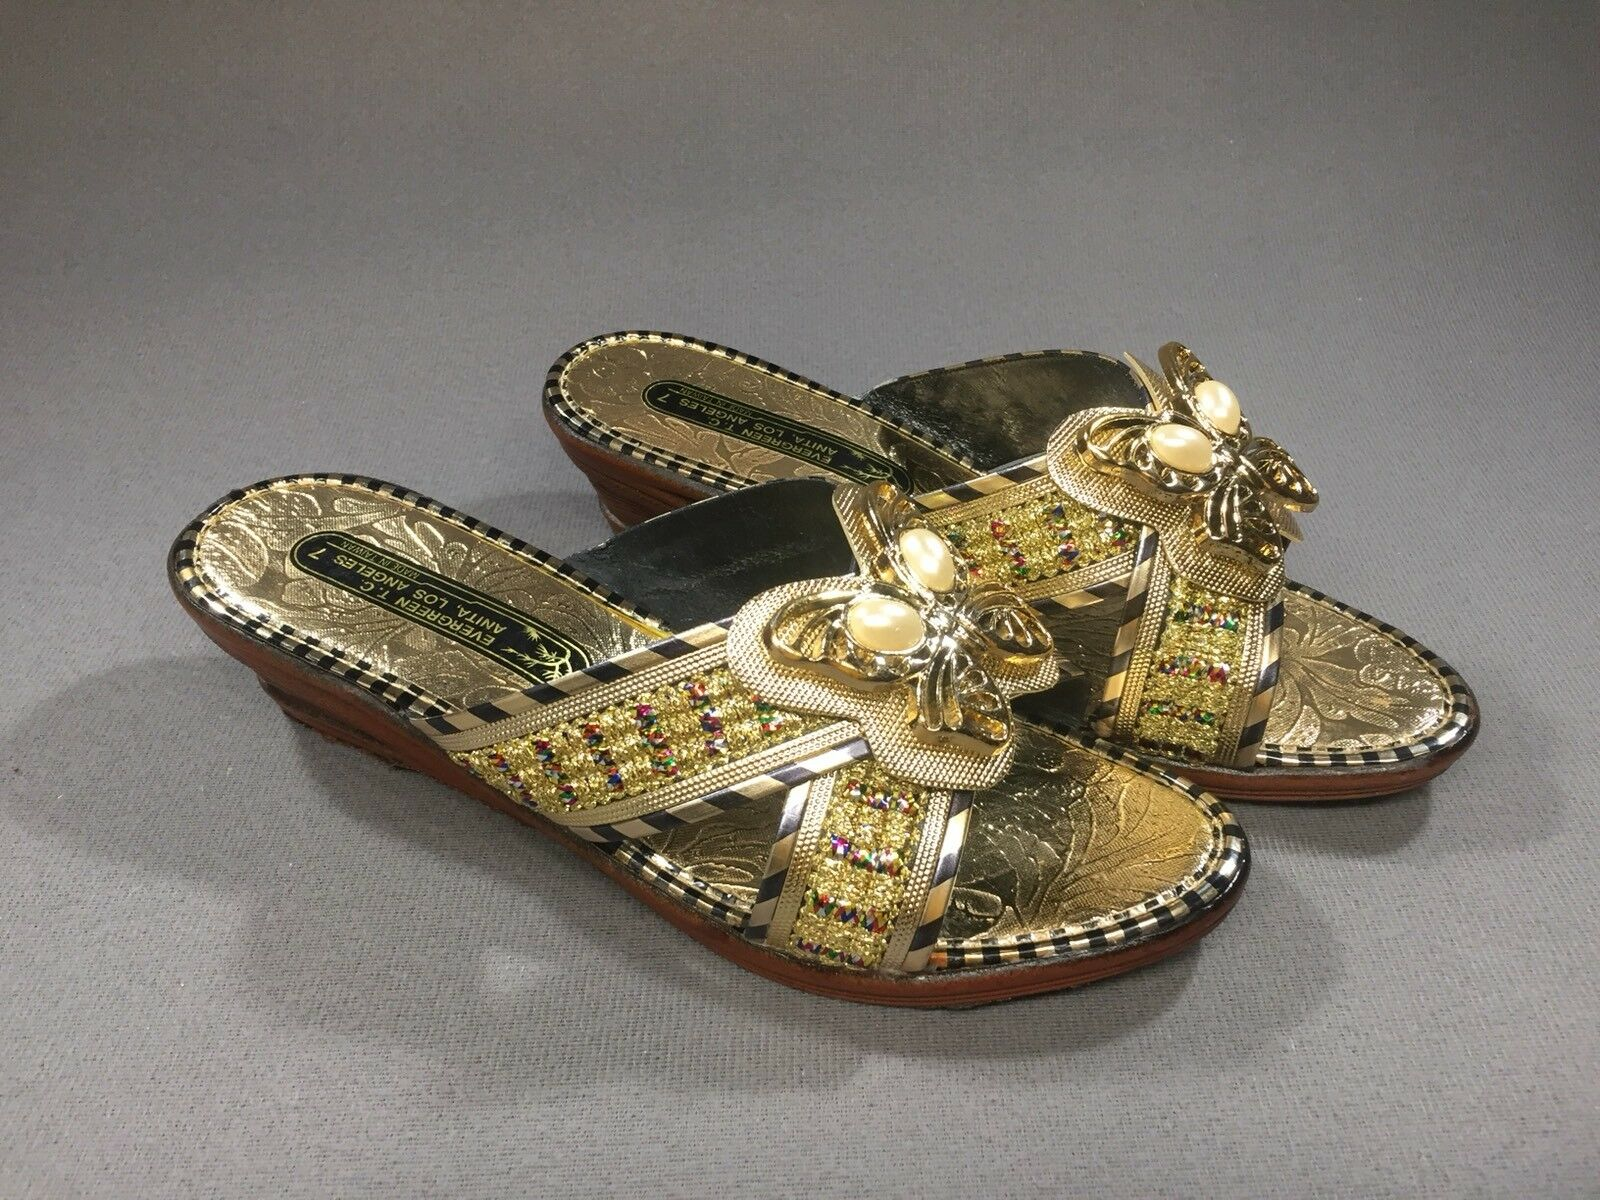 Vintage Sandals Retro Gold Butterfly Slip-on Sandals Vintage Phoenix Wedge Heel Sz 7 Los Angeles 6a2e33